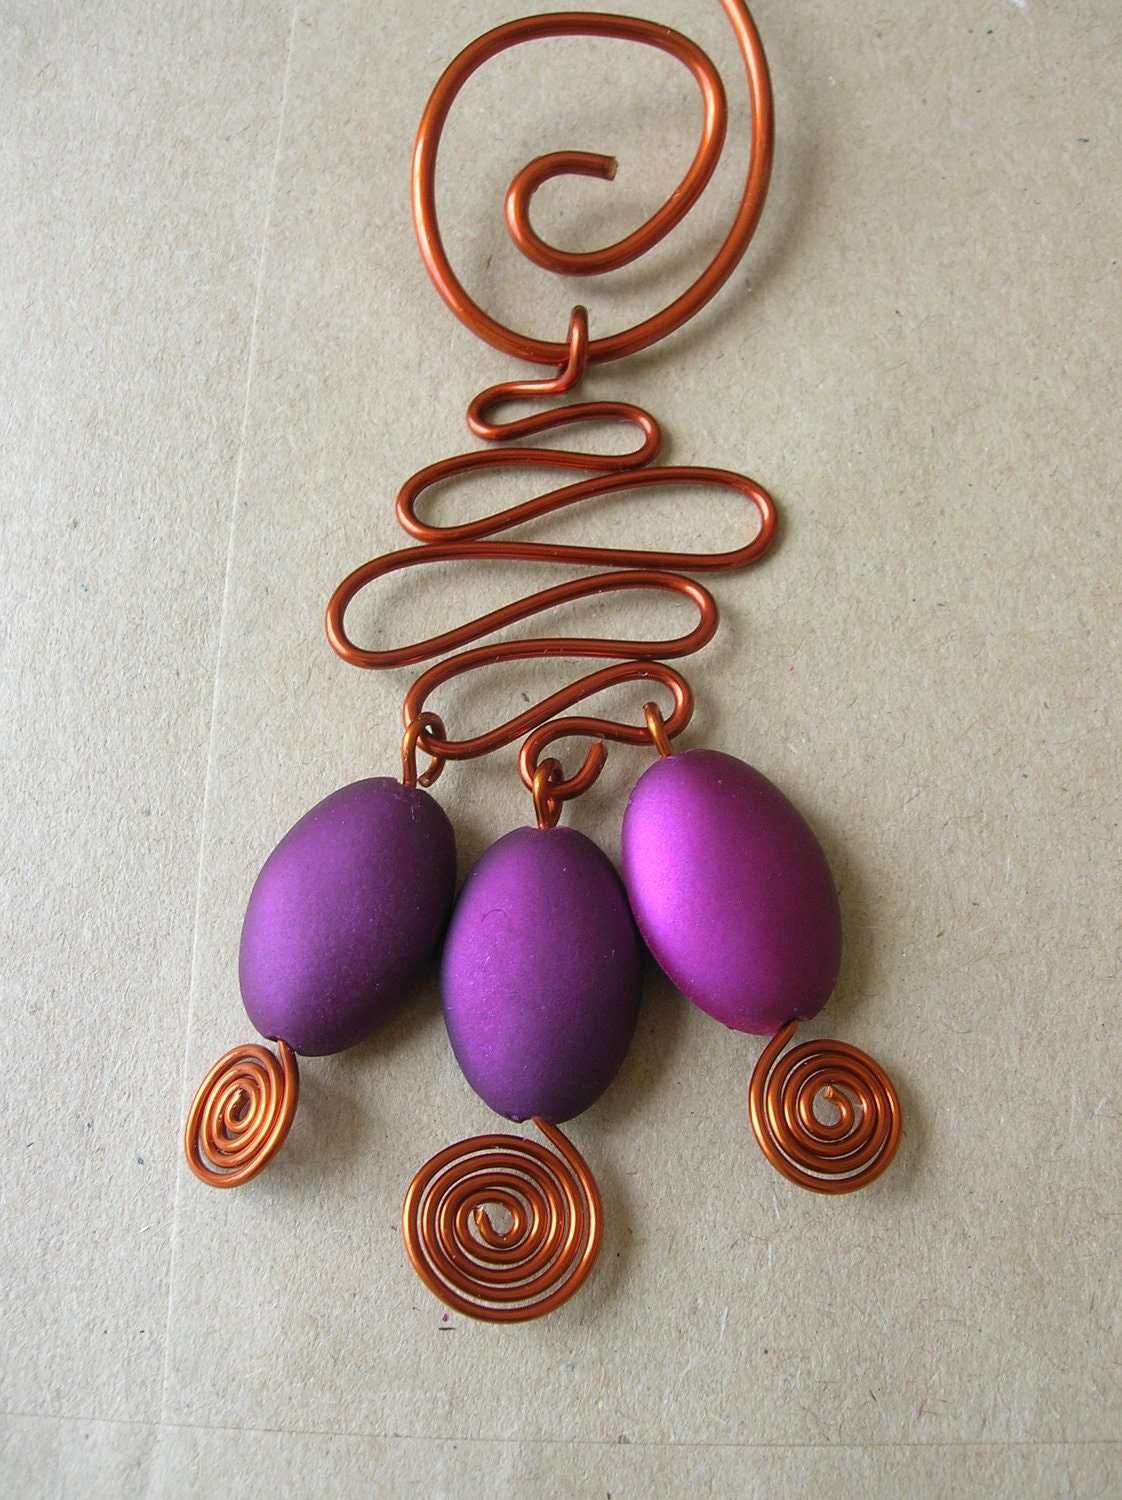 Set - Copper and Magenta Ovals - Necklace with Earrings